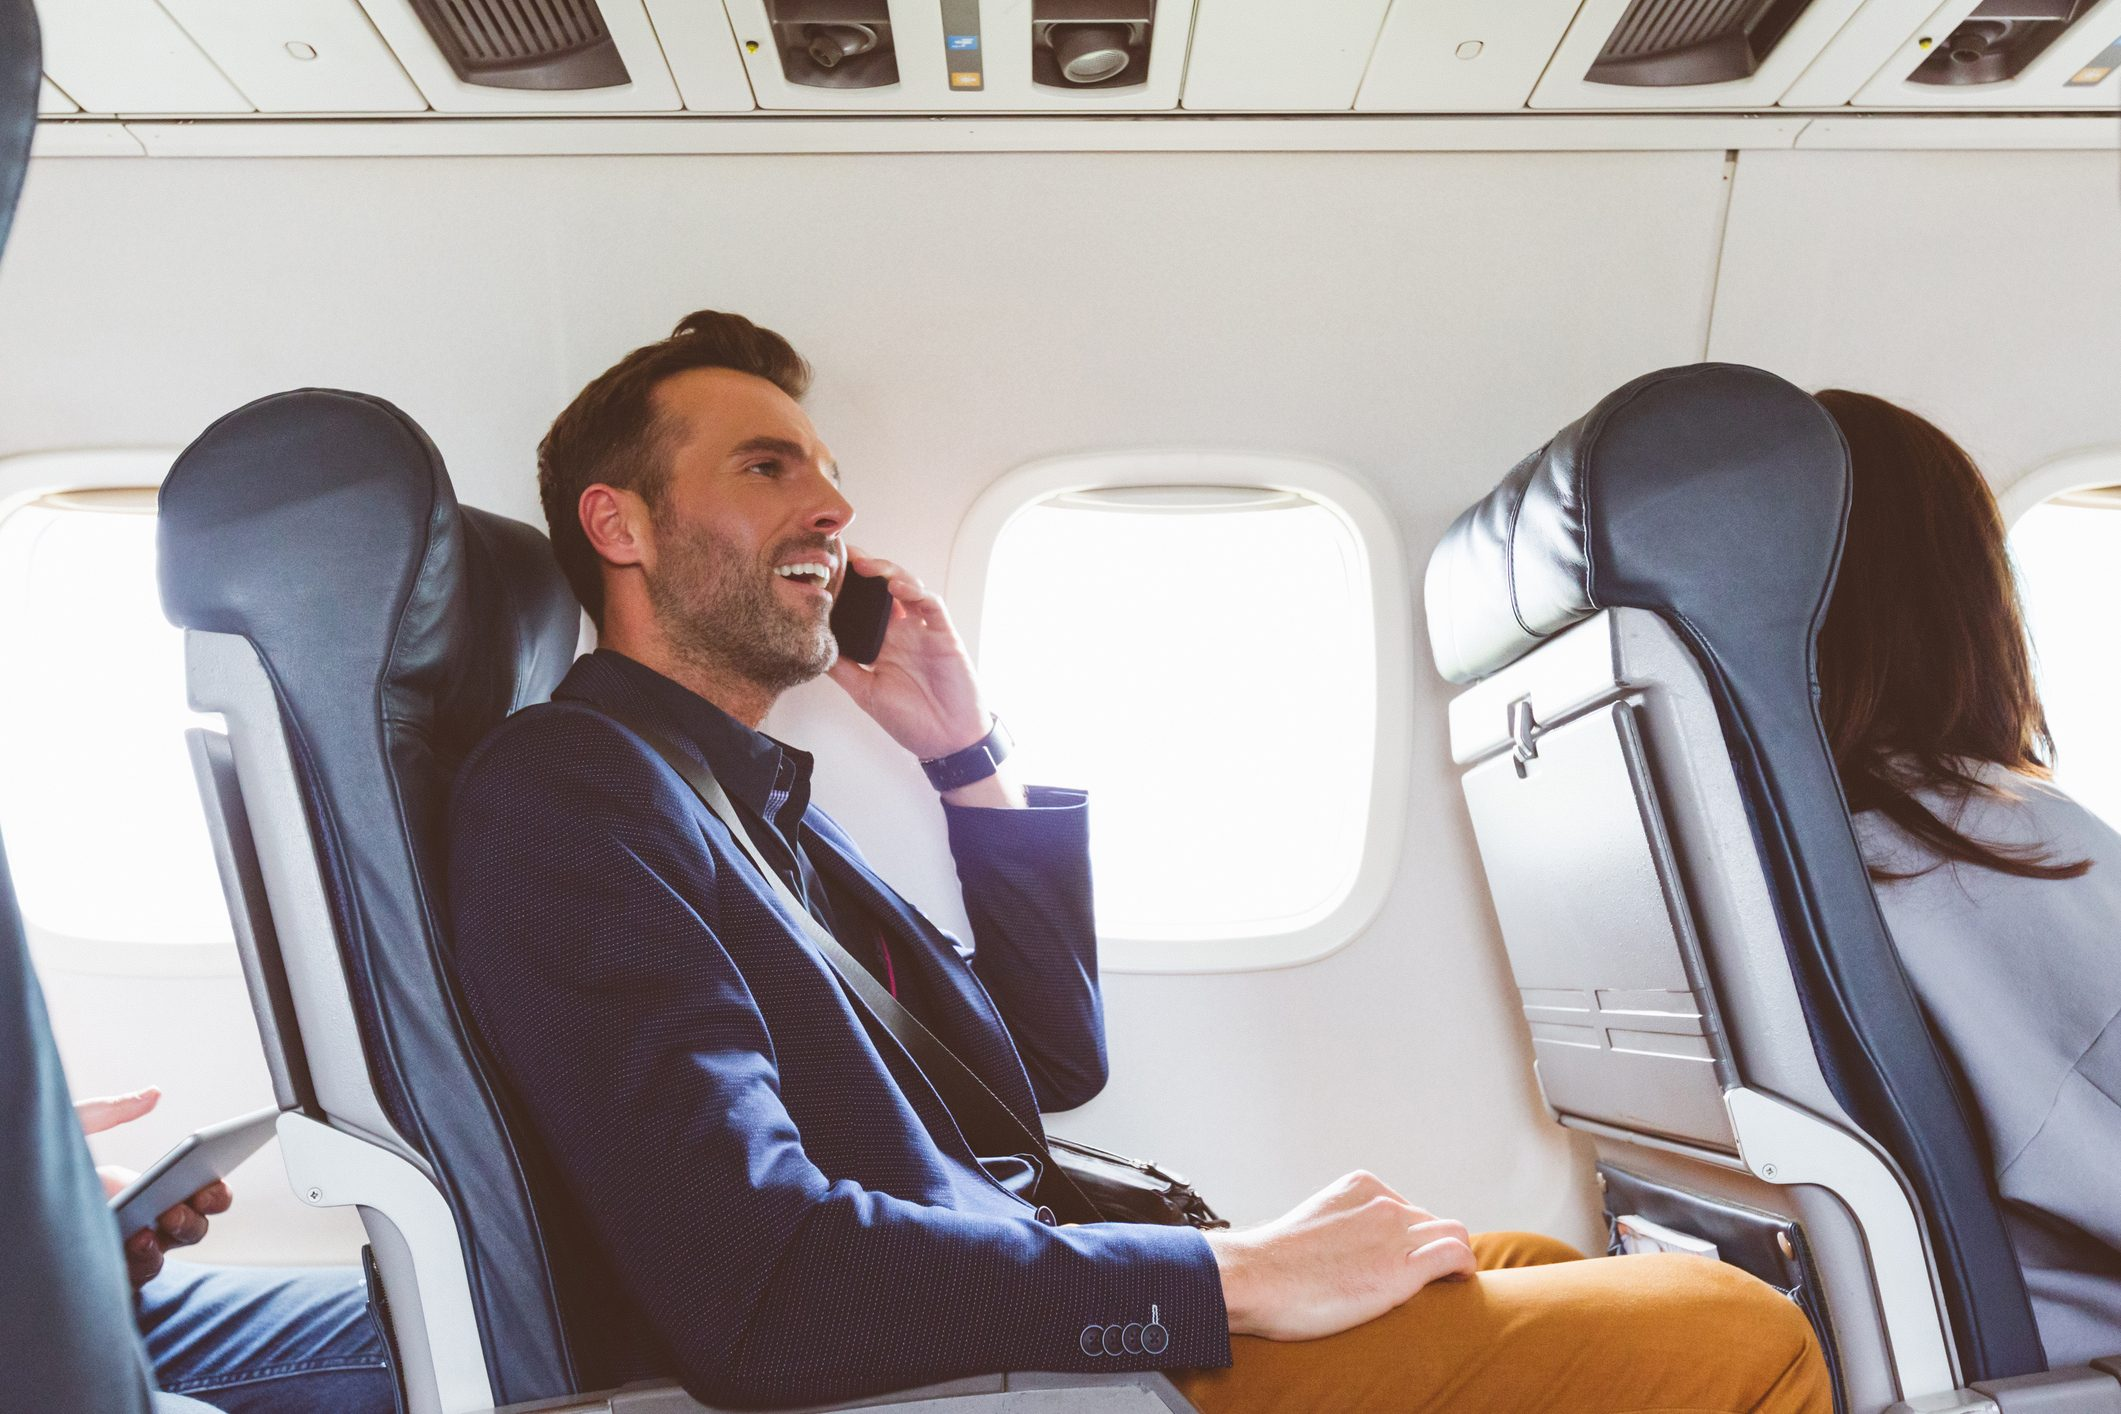 Businessman using mobile phone in airplane